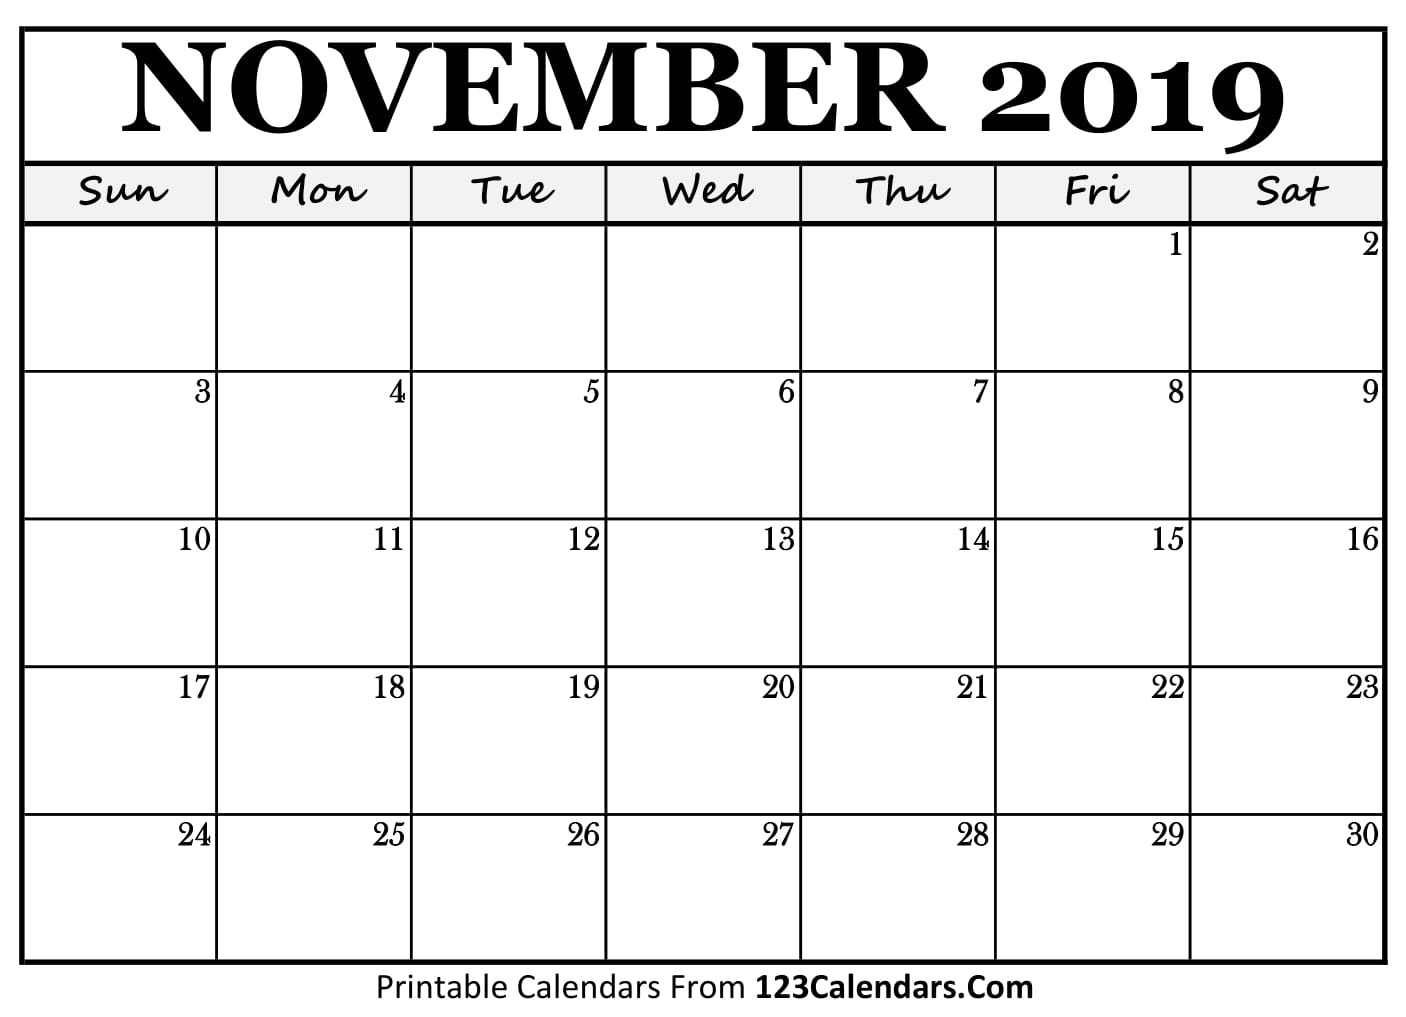 photograph relating to Printable Nov. Calendar identify November 2019 Printable Calendar